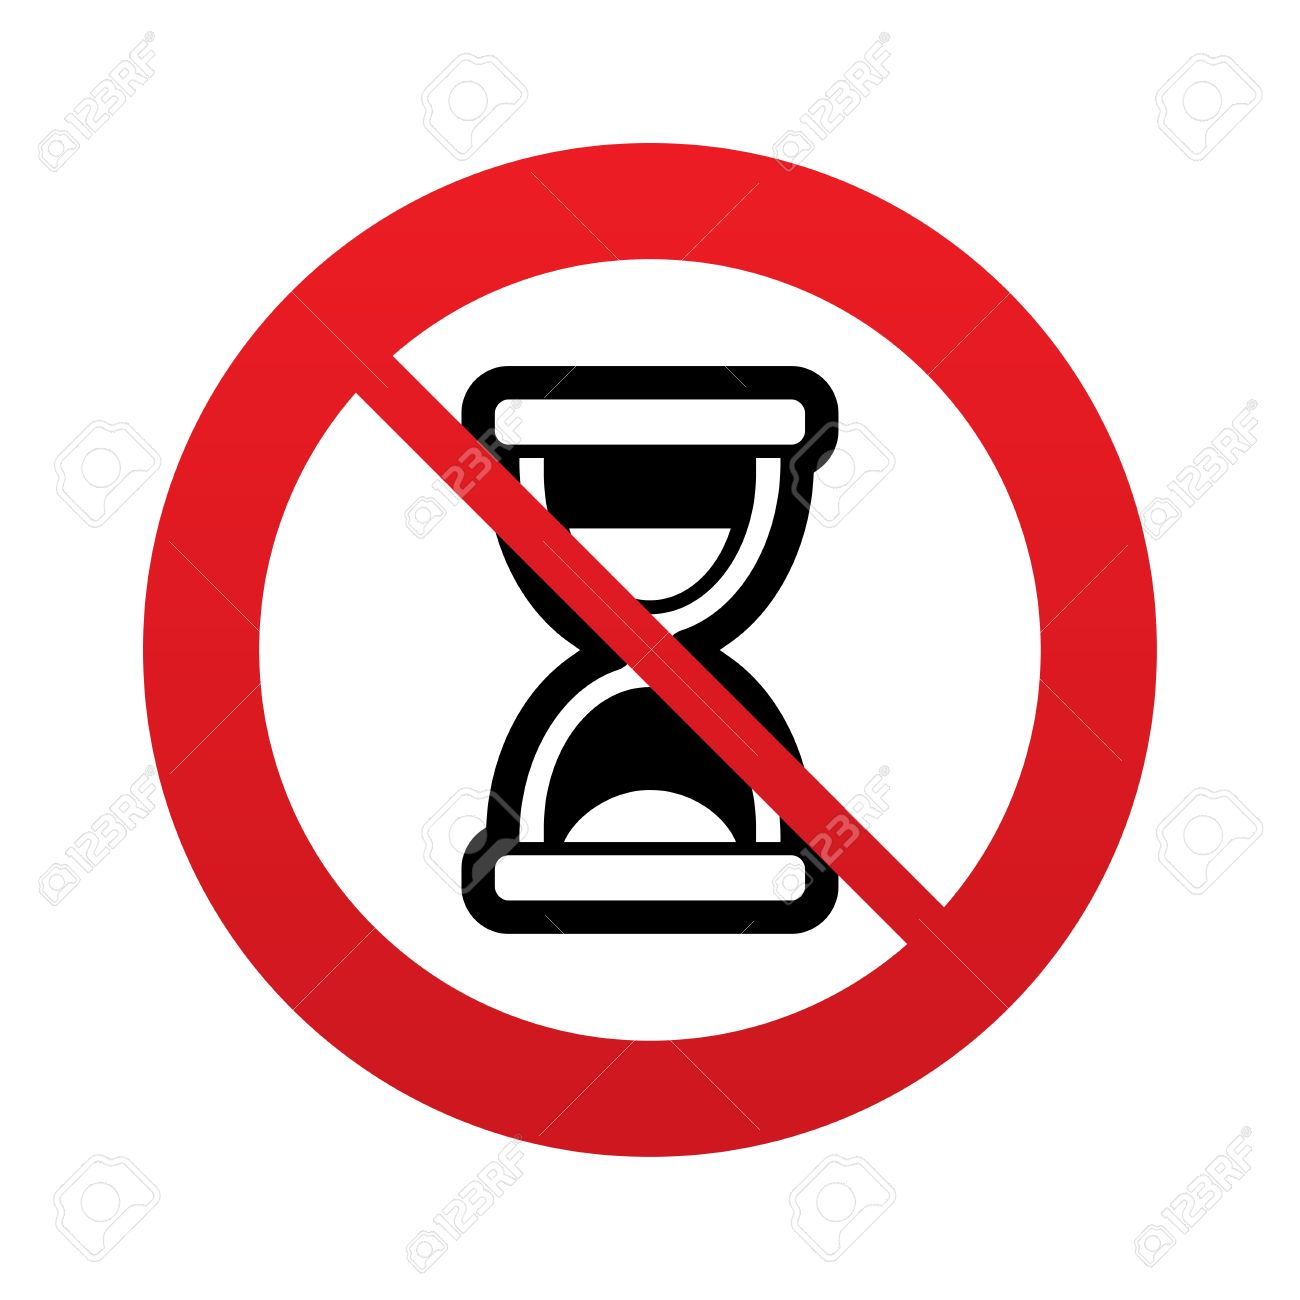 No Time. Hourglass Sign Icon. Sand Timer Symbol. Red Prohibition.